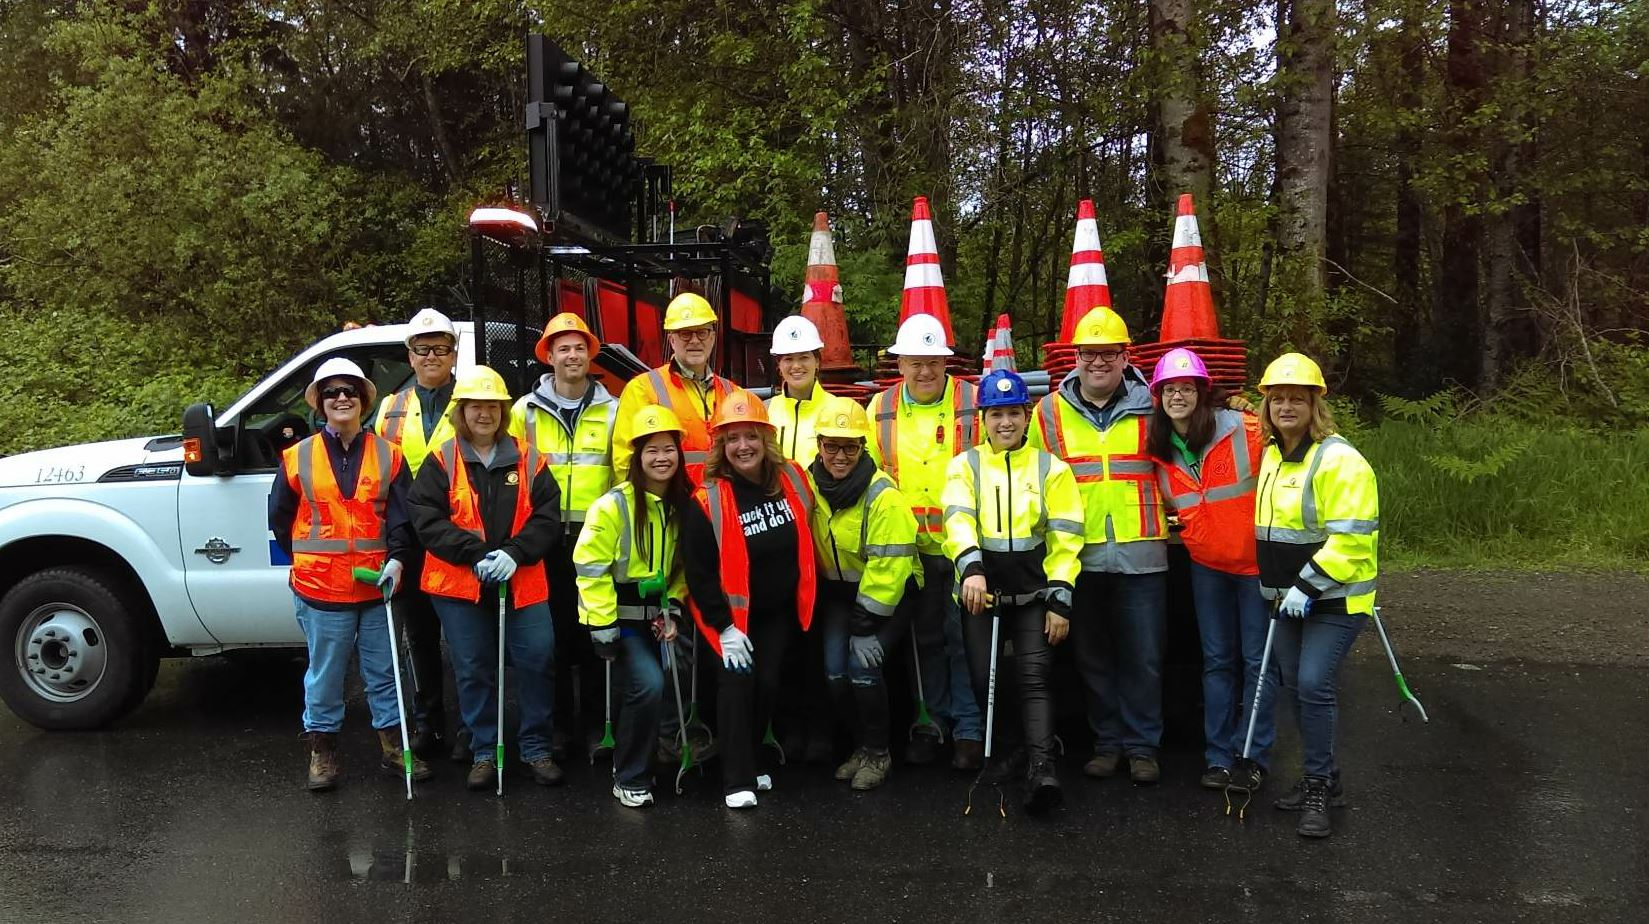 Volunteers from Lakeside participate in community events such as Adopt-a-Highway cleanup efforts.